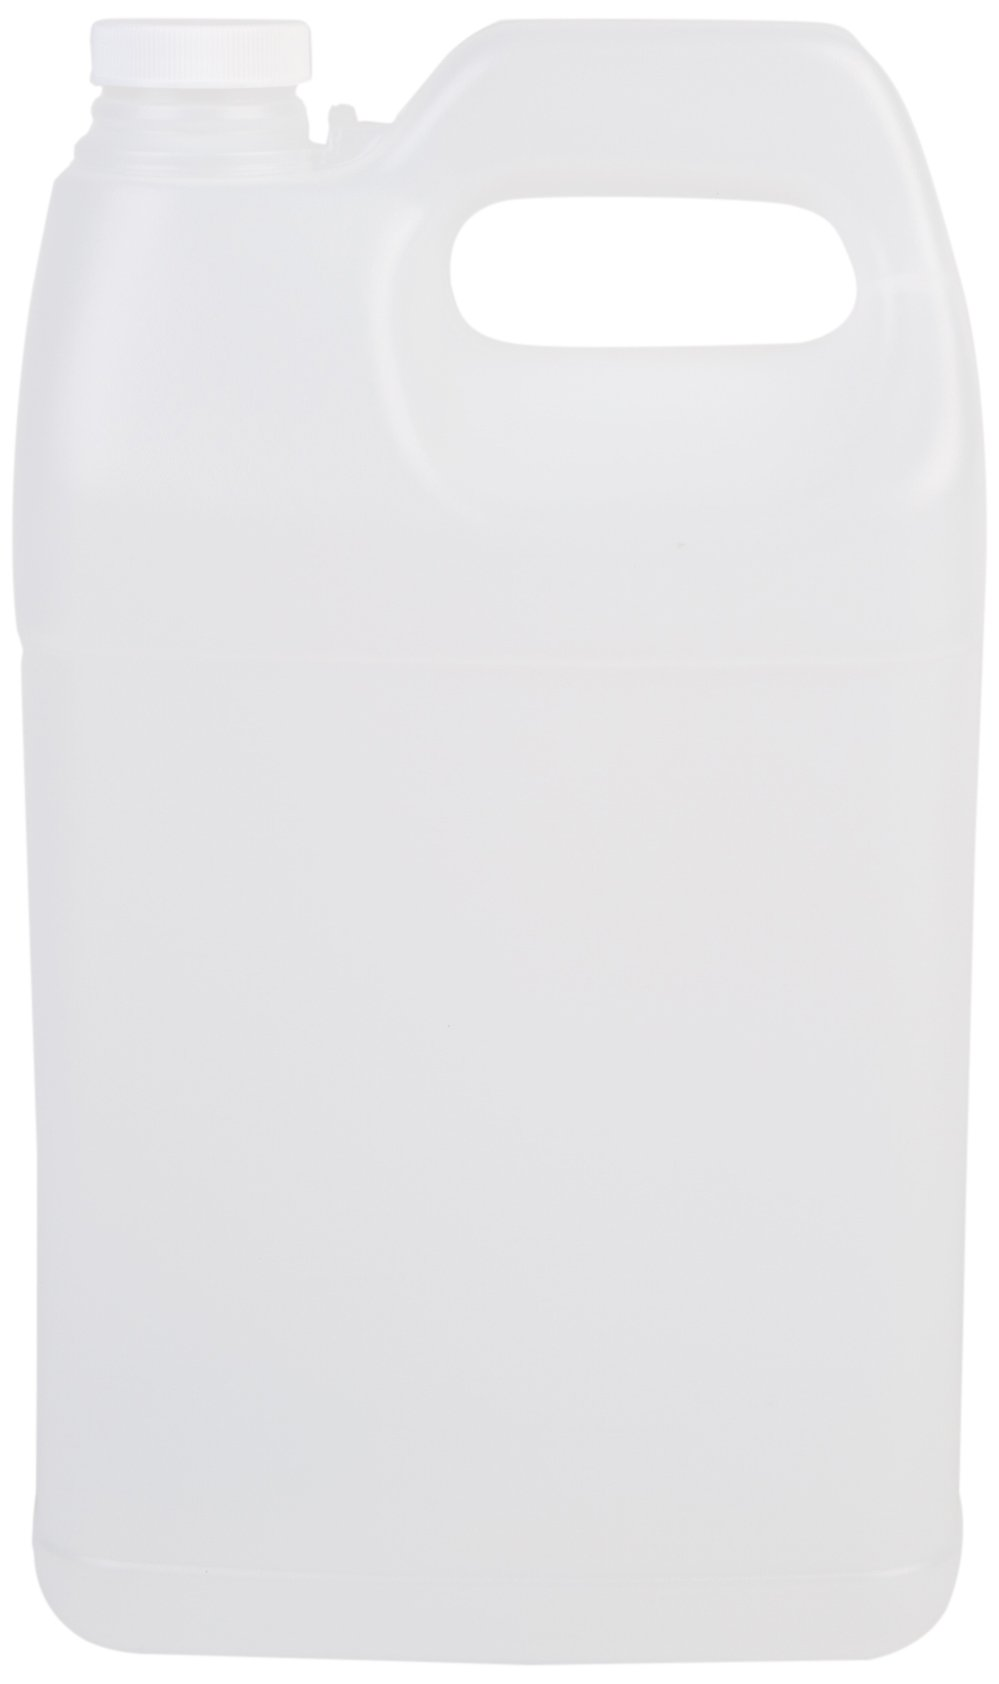 Hudson Exchange F-Style HDPE Plastic Jug with 38 mm Caps, 1 gal, Natural, 6 Piece by Hudson Exchange